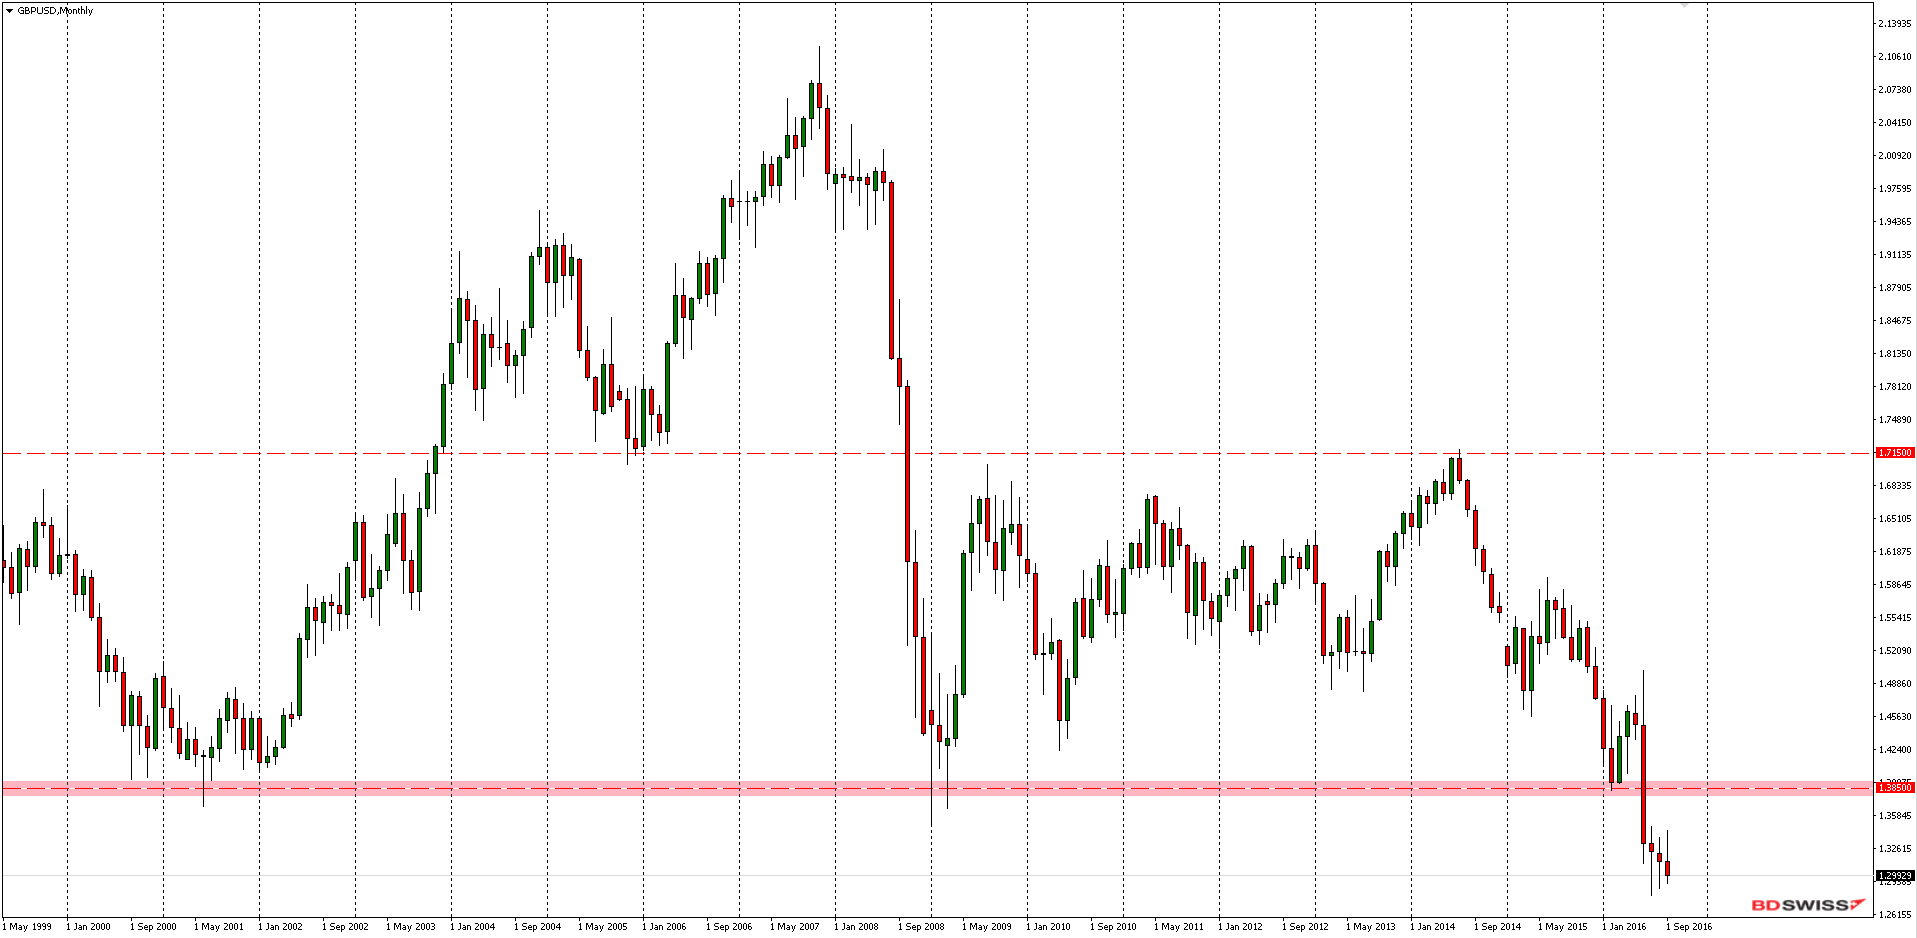 GBPUSD Monthly